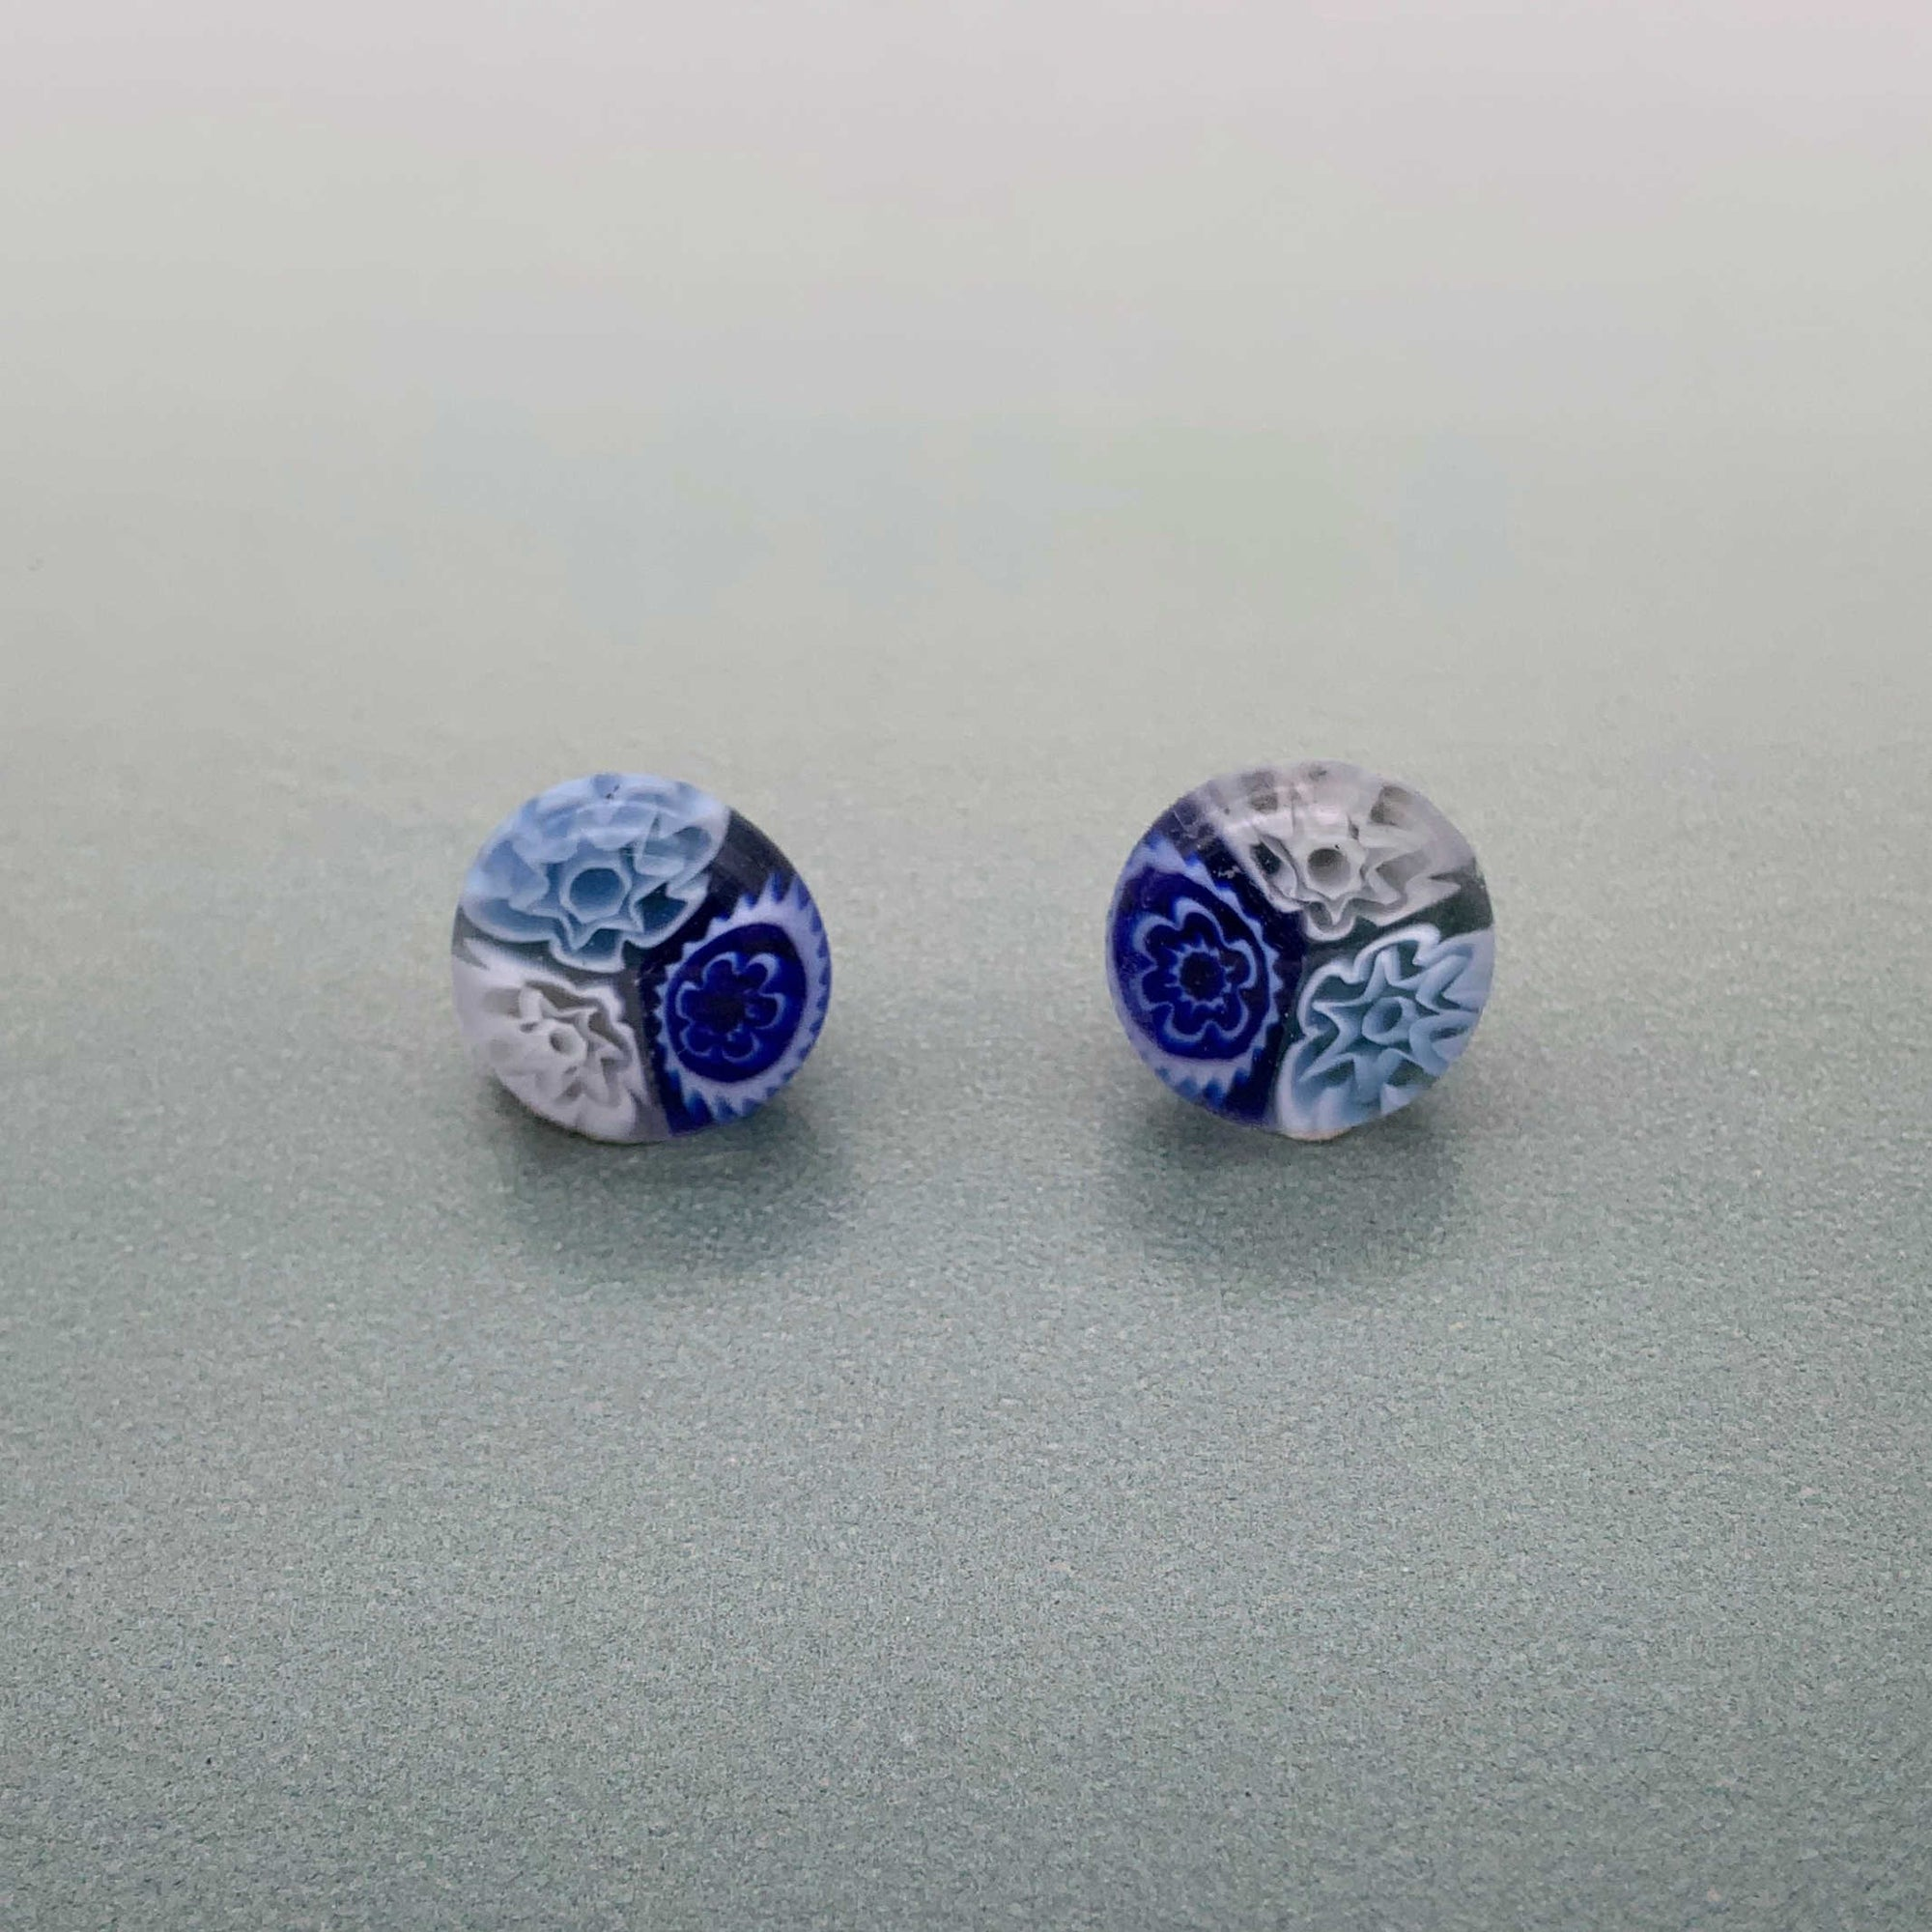 Cascade sky glass stud earrings